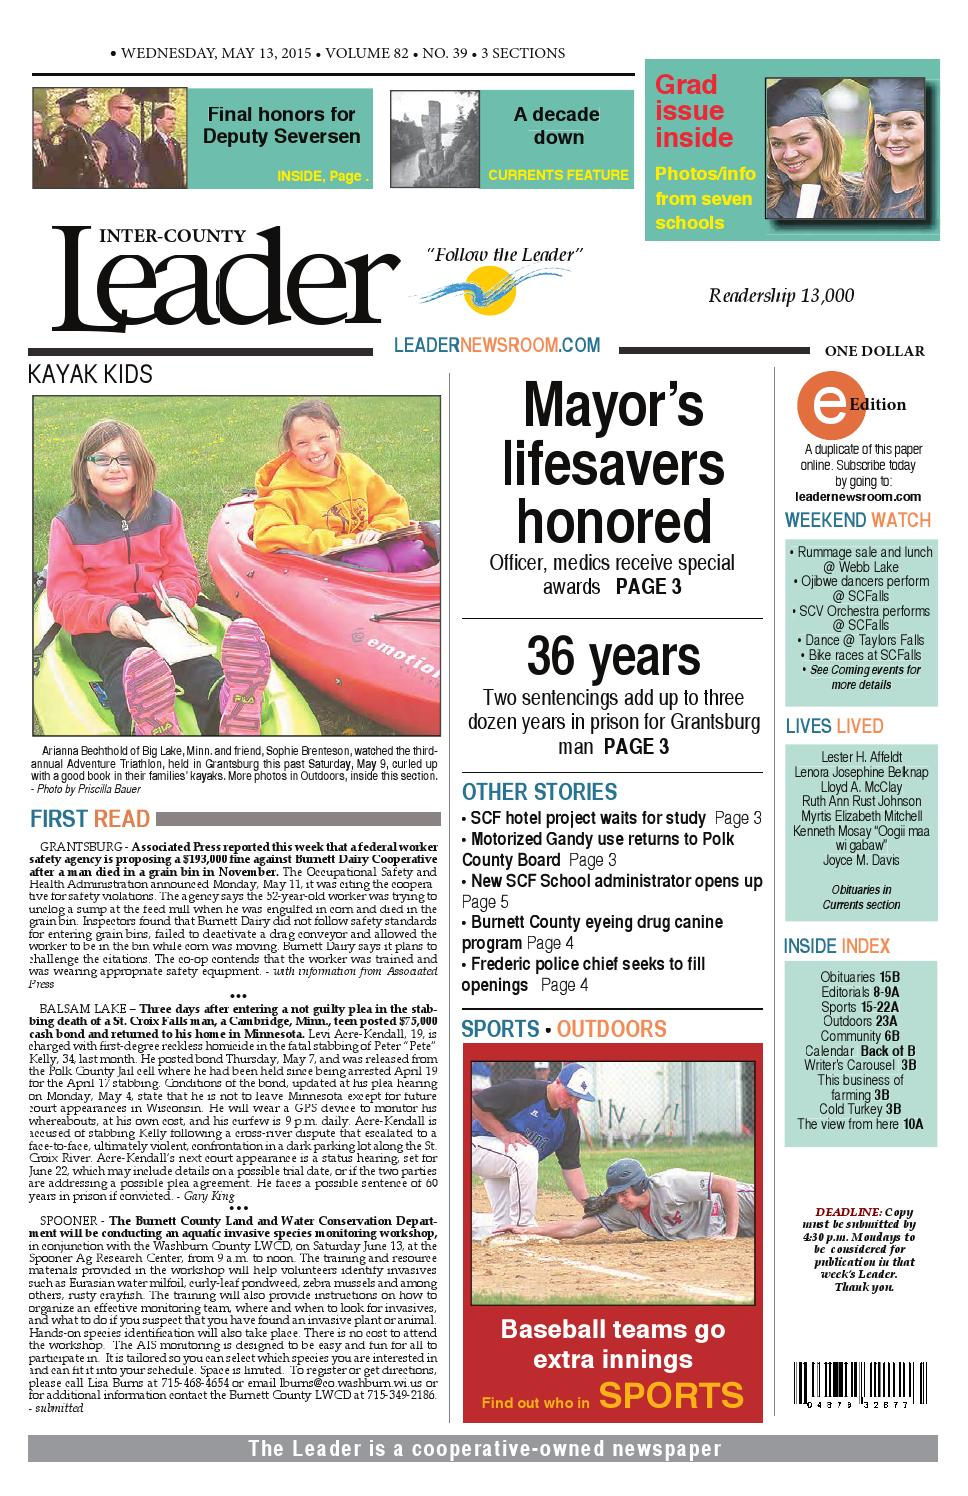 LEADER   May 13   2015 by Inter County Leader issuu